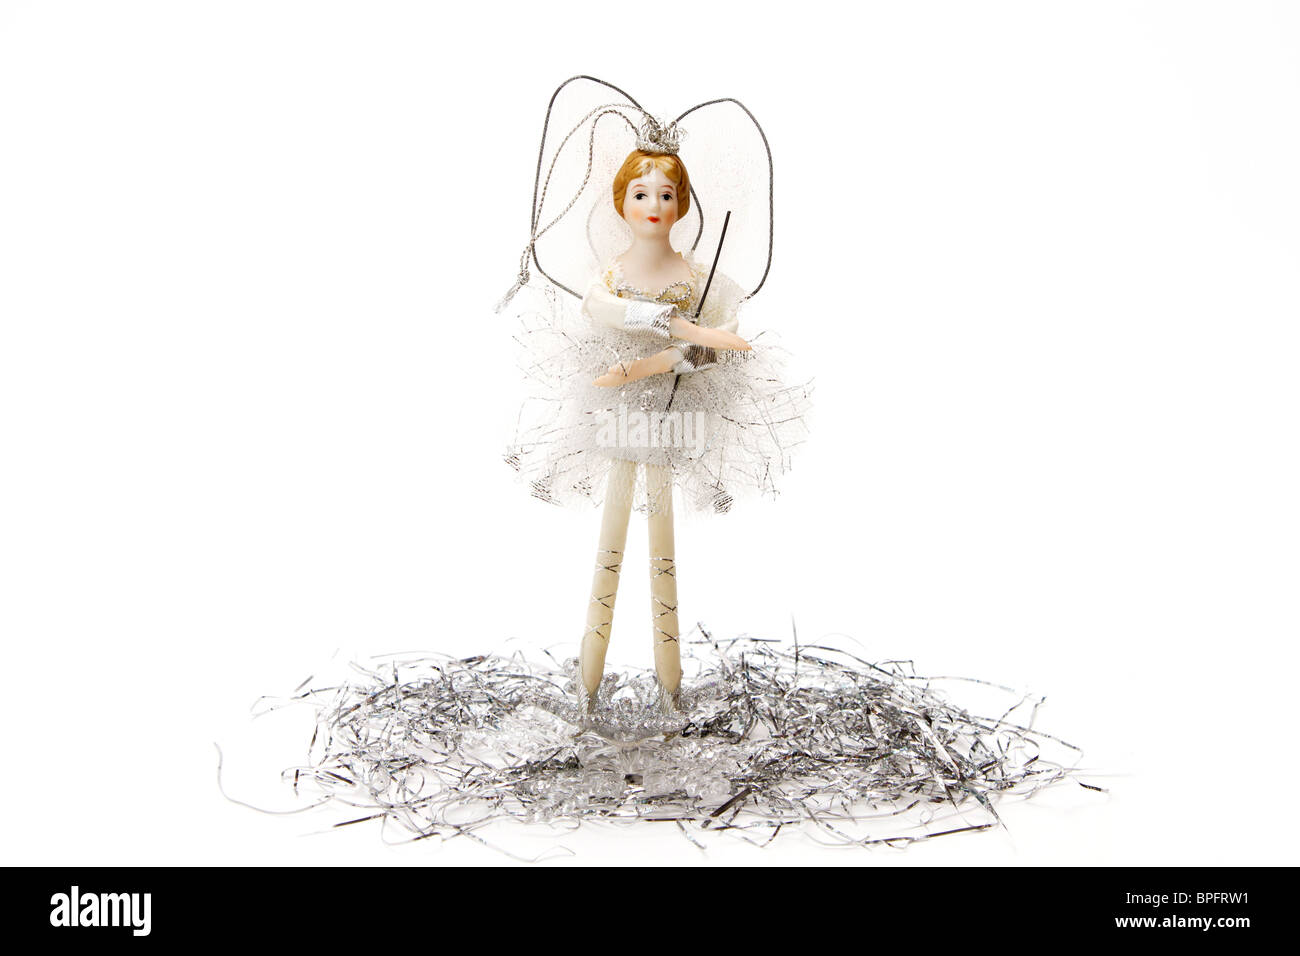 White and silver treetop fairy Christmas ornament standing on tinsel on a white background - Stock Image